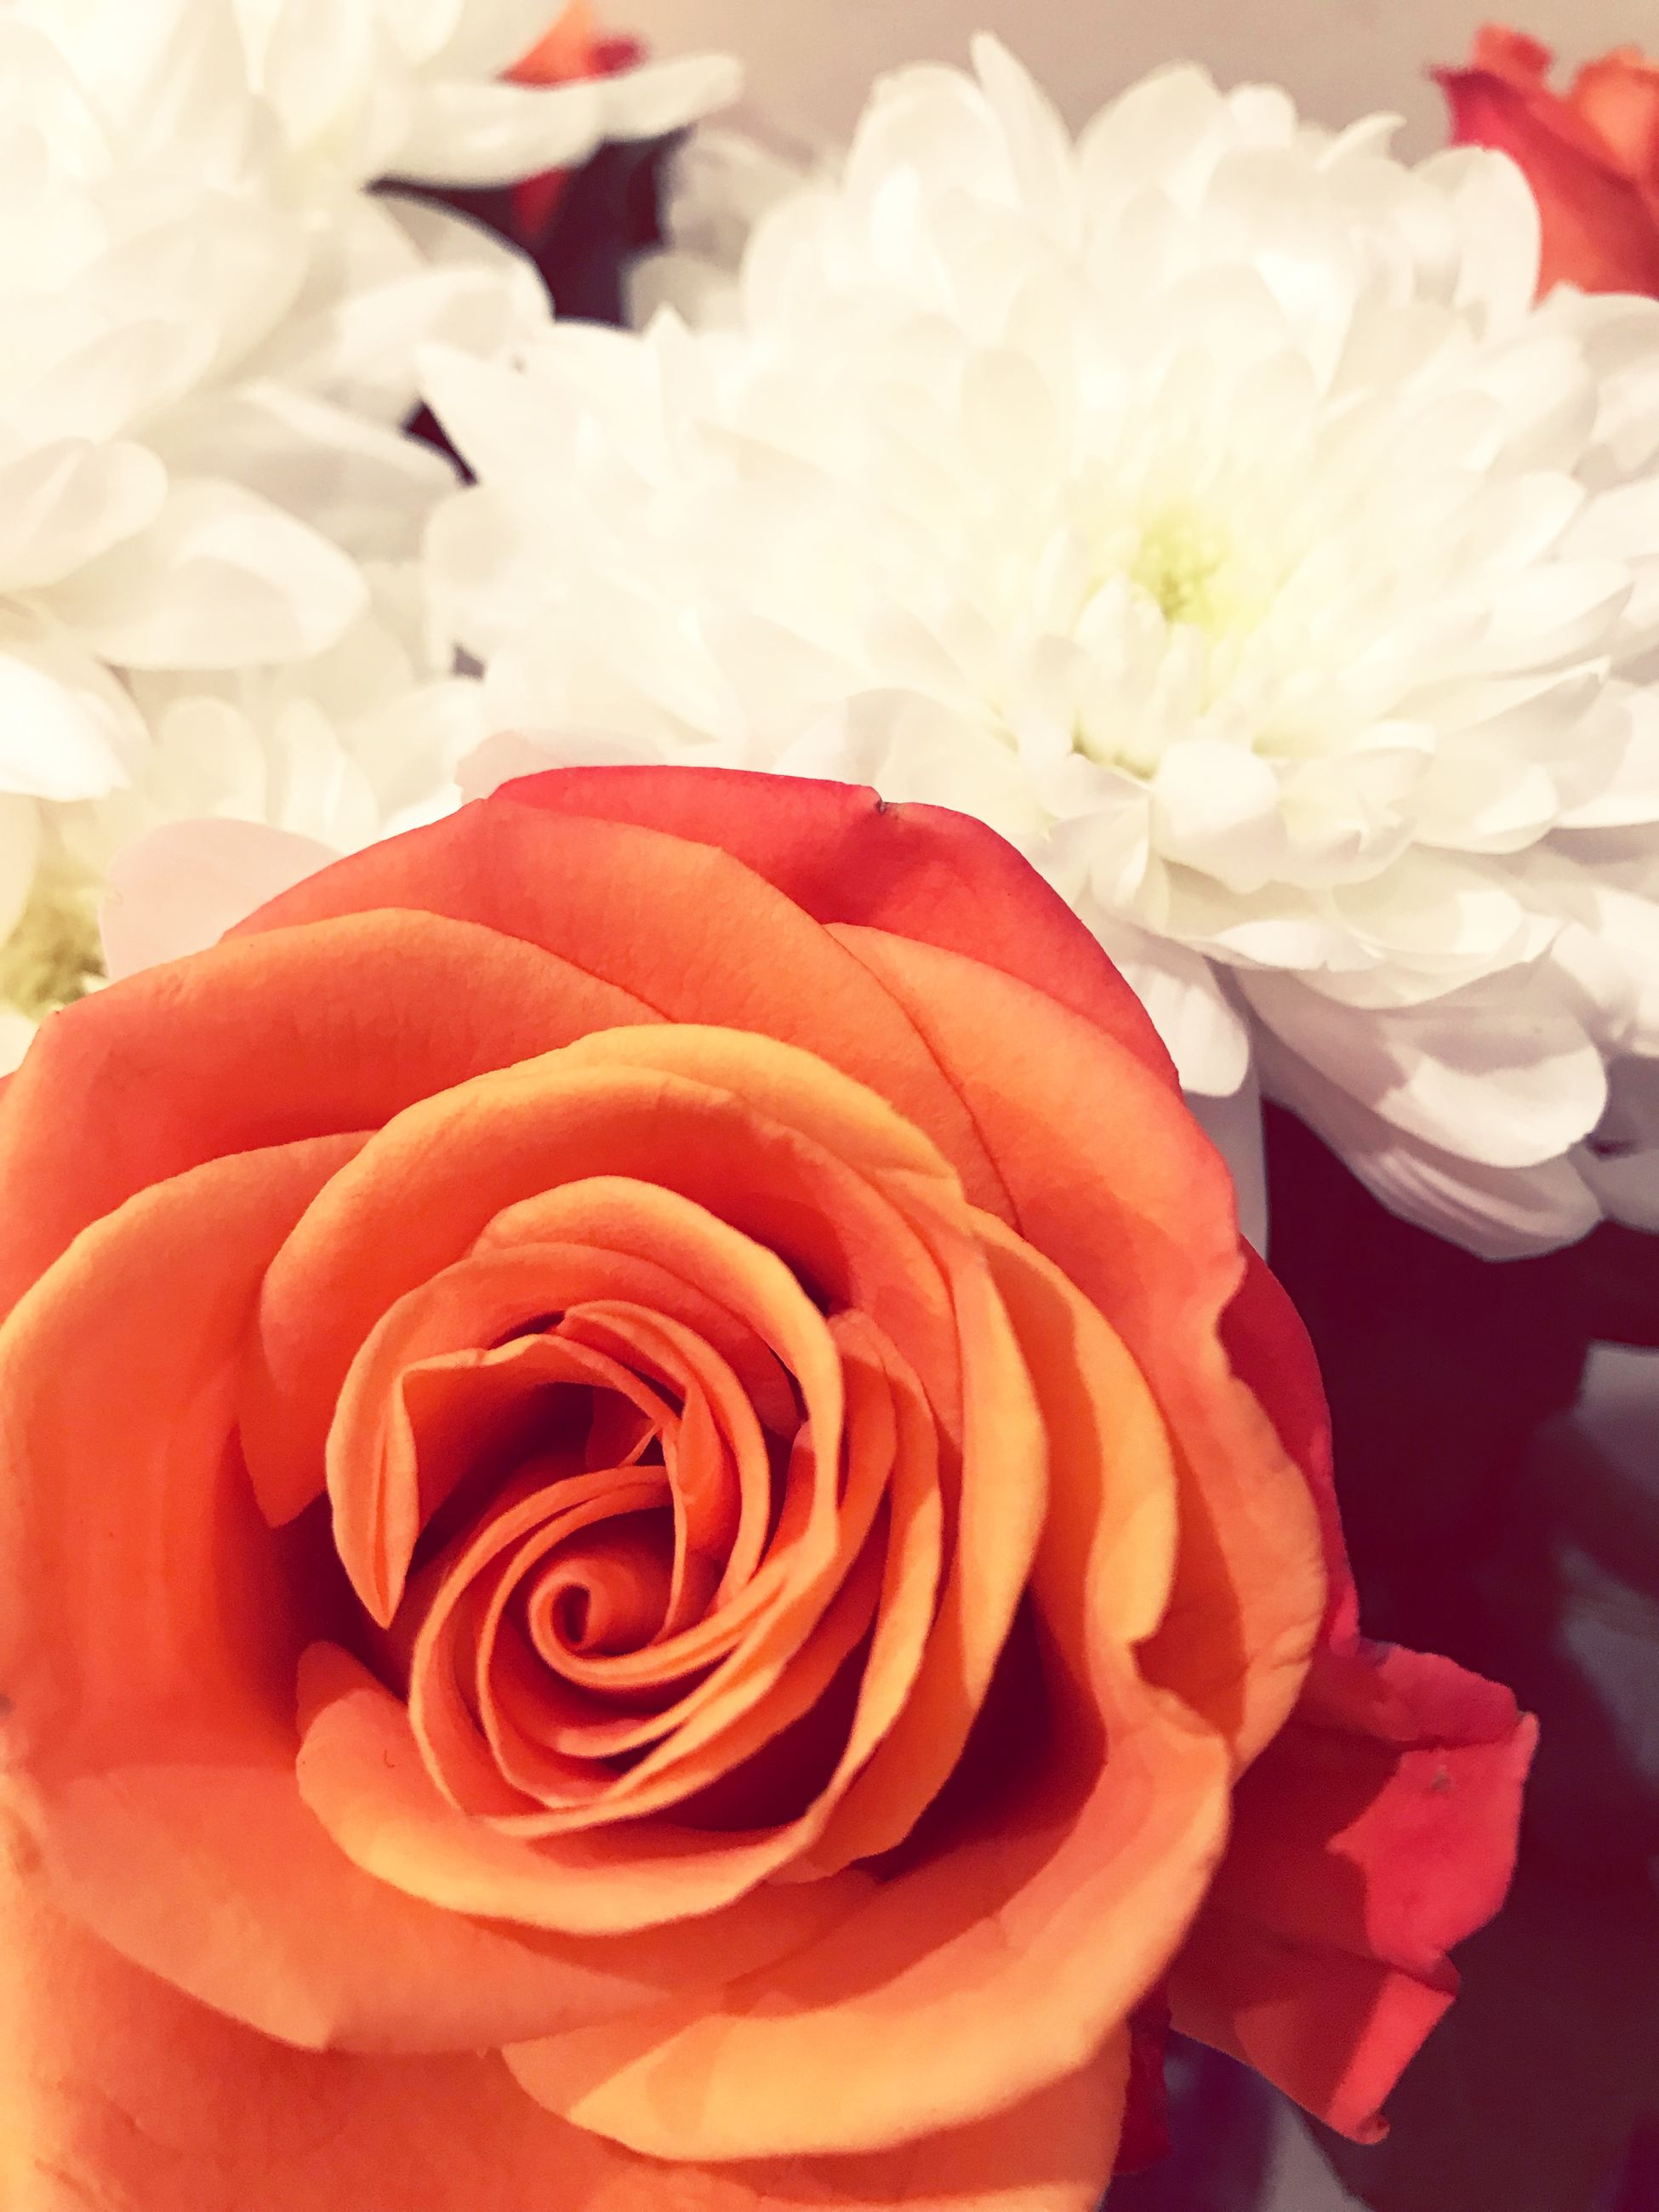 flower, flowering plant, beauty in nature, rose, freshness, plant, vulnerability, rose - flower, fragility, close-up, petal, flower head, inflorescence, nature, no people, focus on foreground, indoors, growth, flower arrangement, bouquet, softness